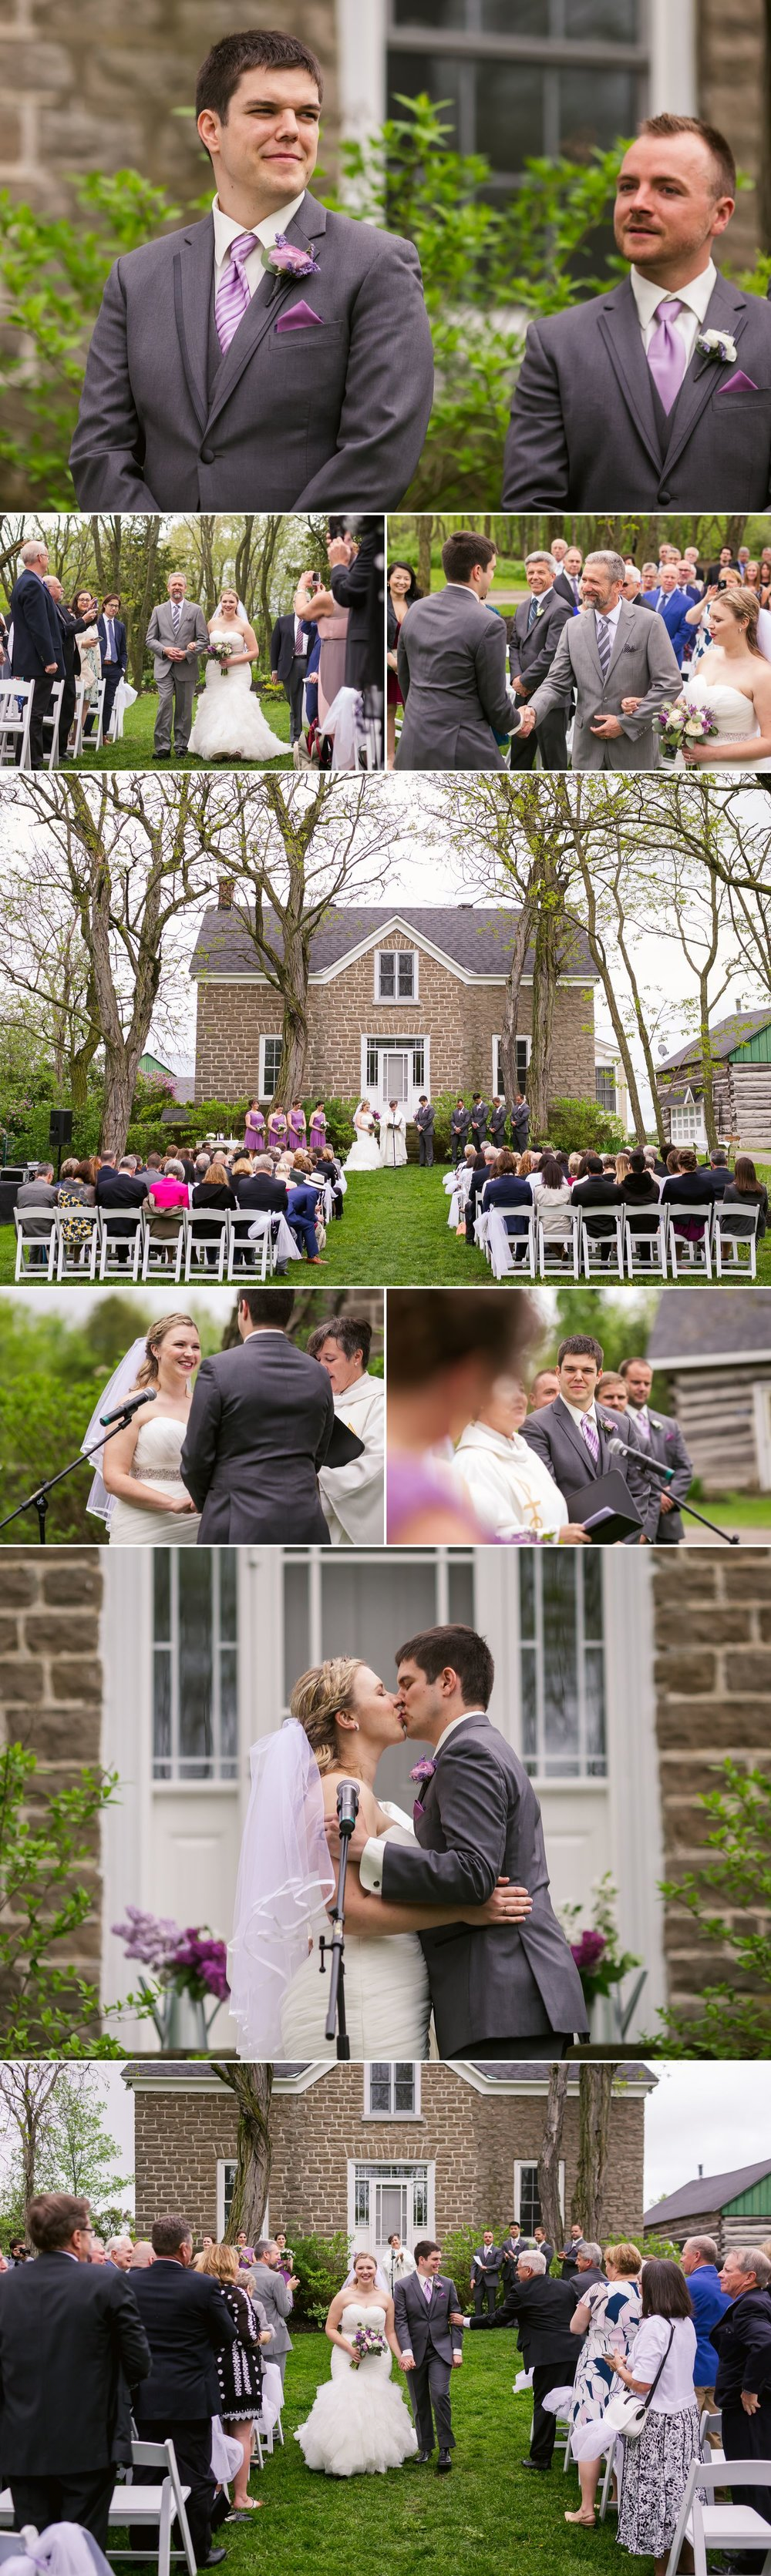 An outdoor spring wedding ceremony infront of the old stone house at Stonefields wedding venue